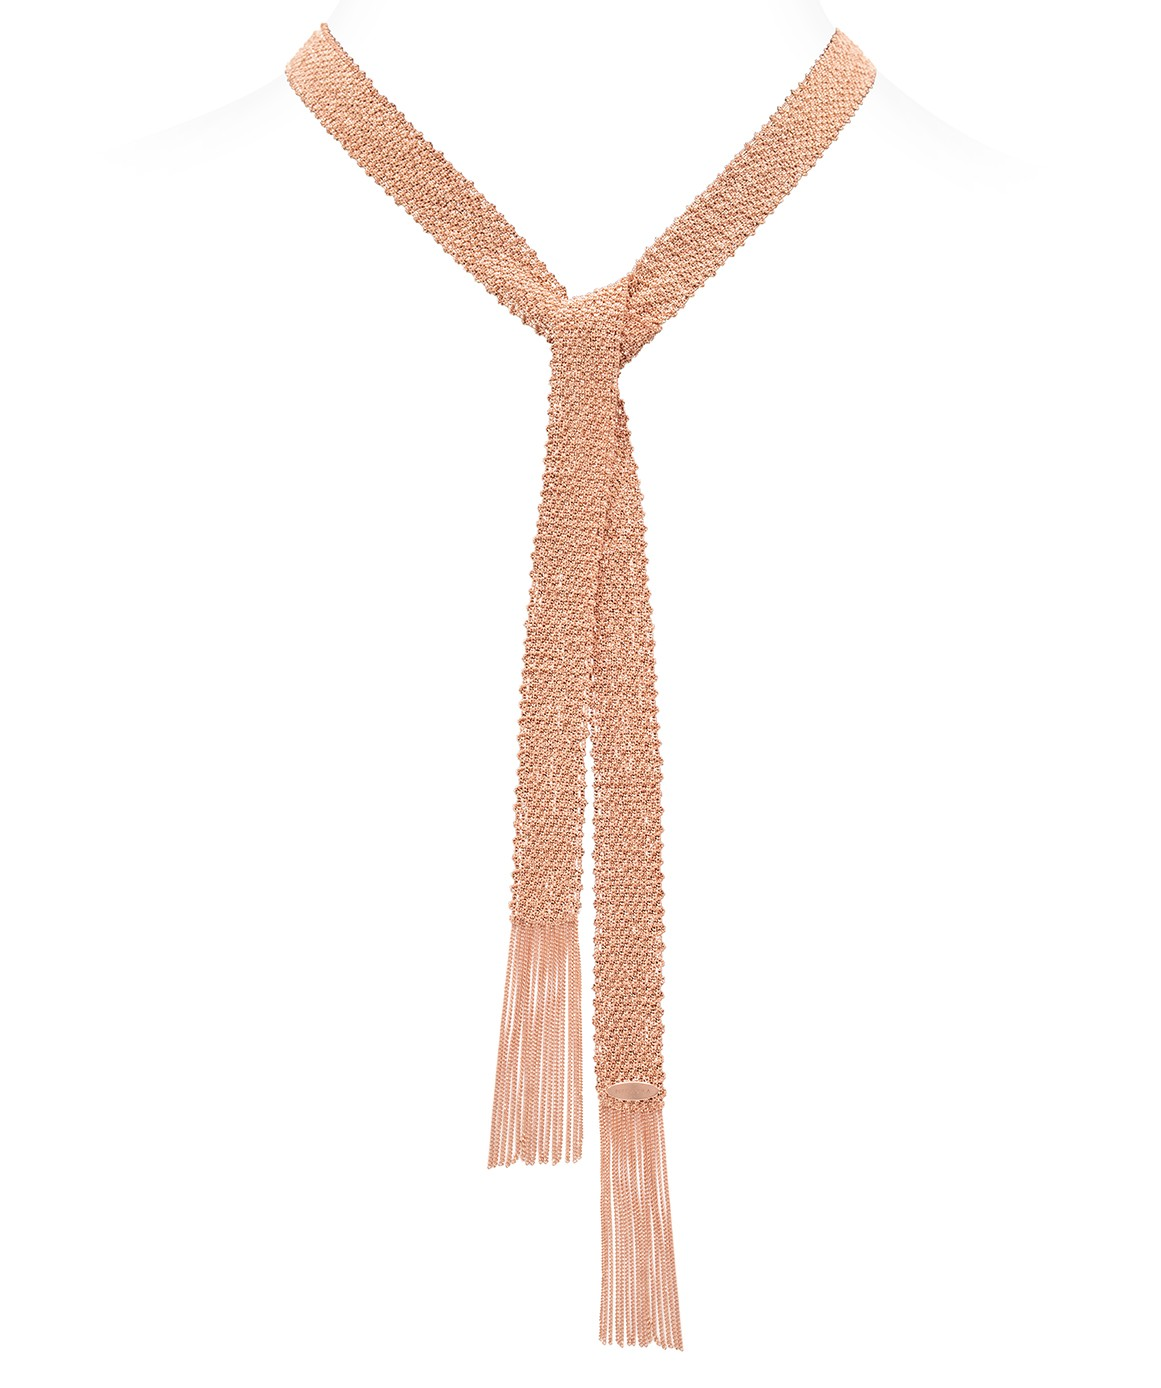 CHAMPAGNE Scarf in Sterling Silver 14Kt. Rose gold plated